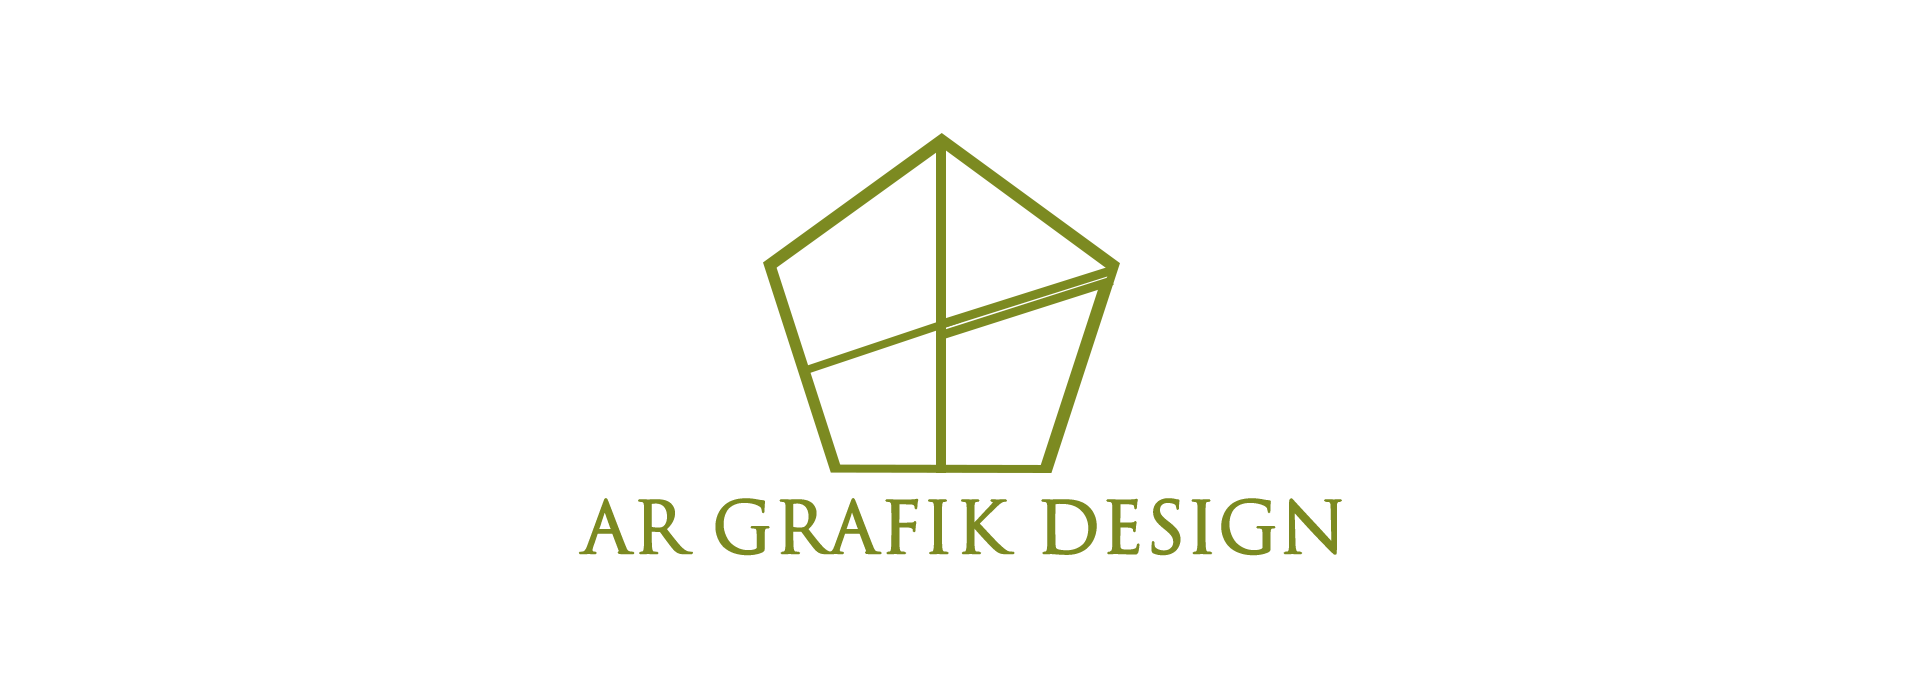 AR-Grafik-Design